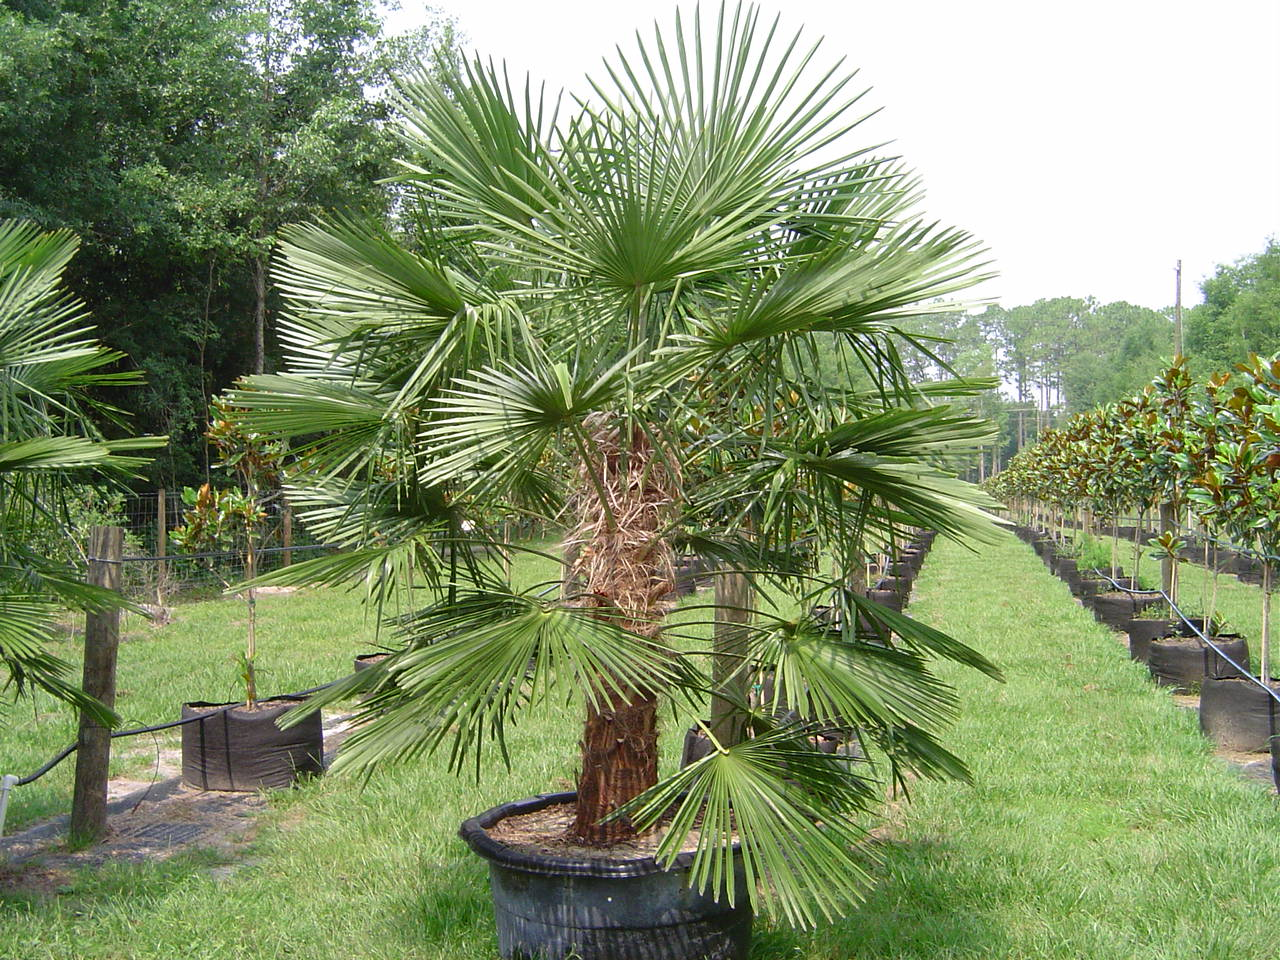 Jax Palm Trees has extensive Inventory including Windmill Palms in Jacksonville, Florida.